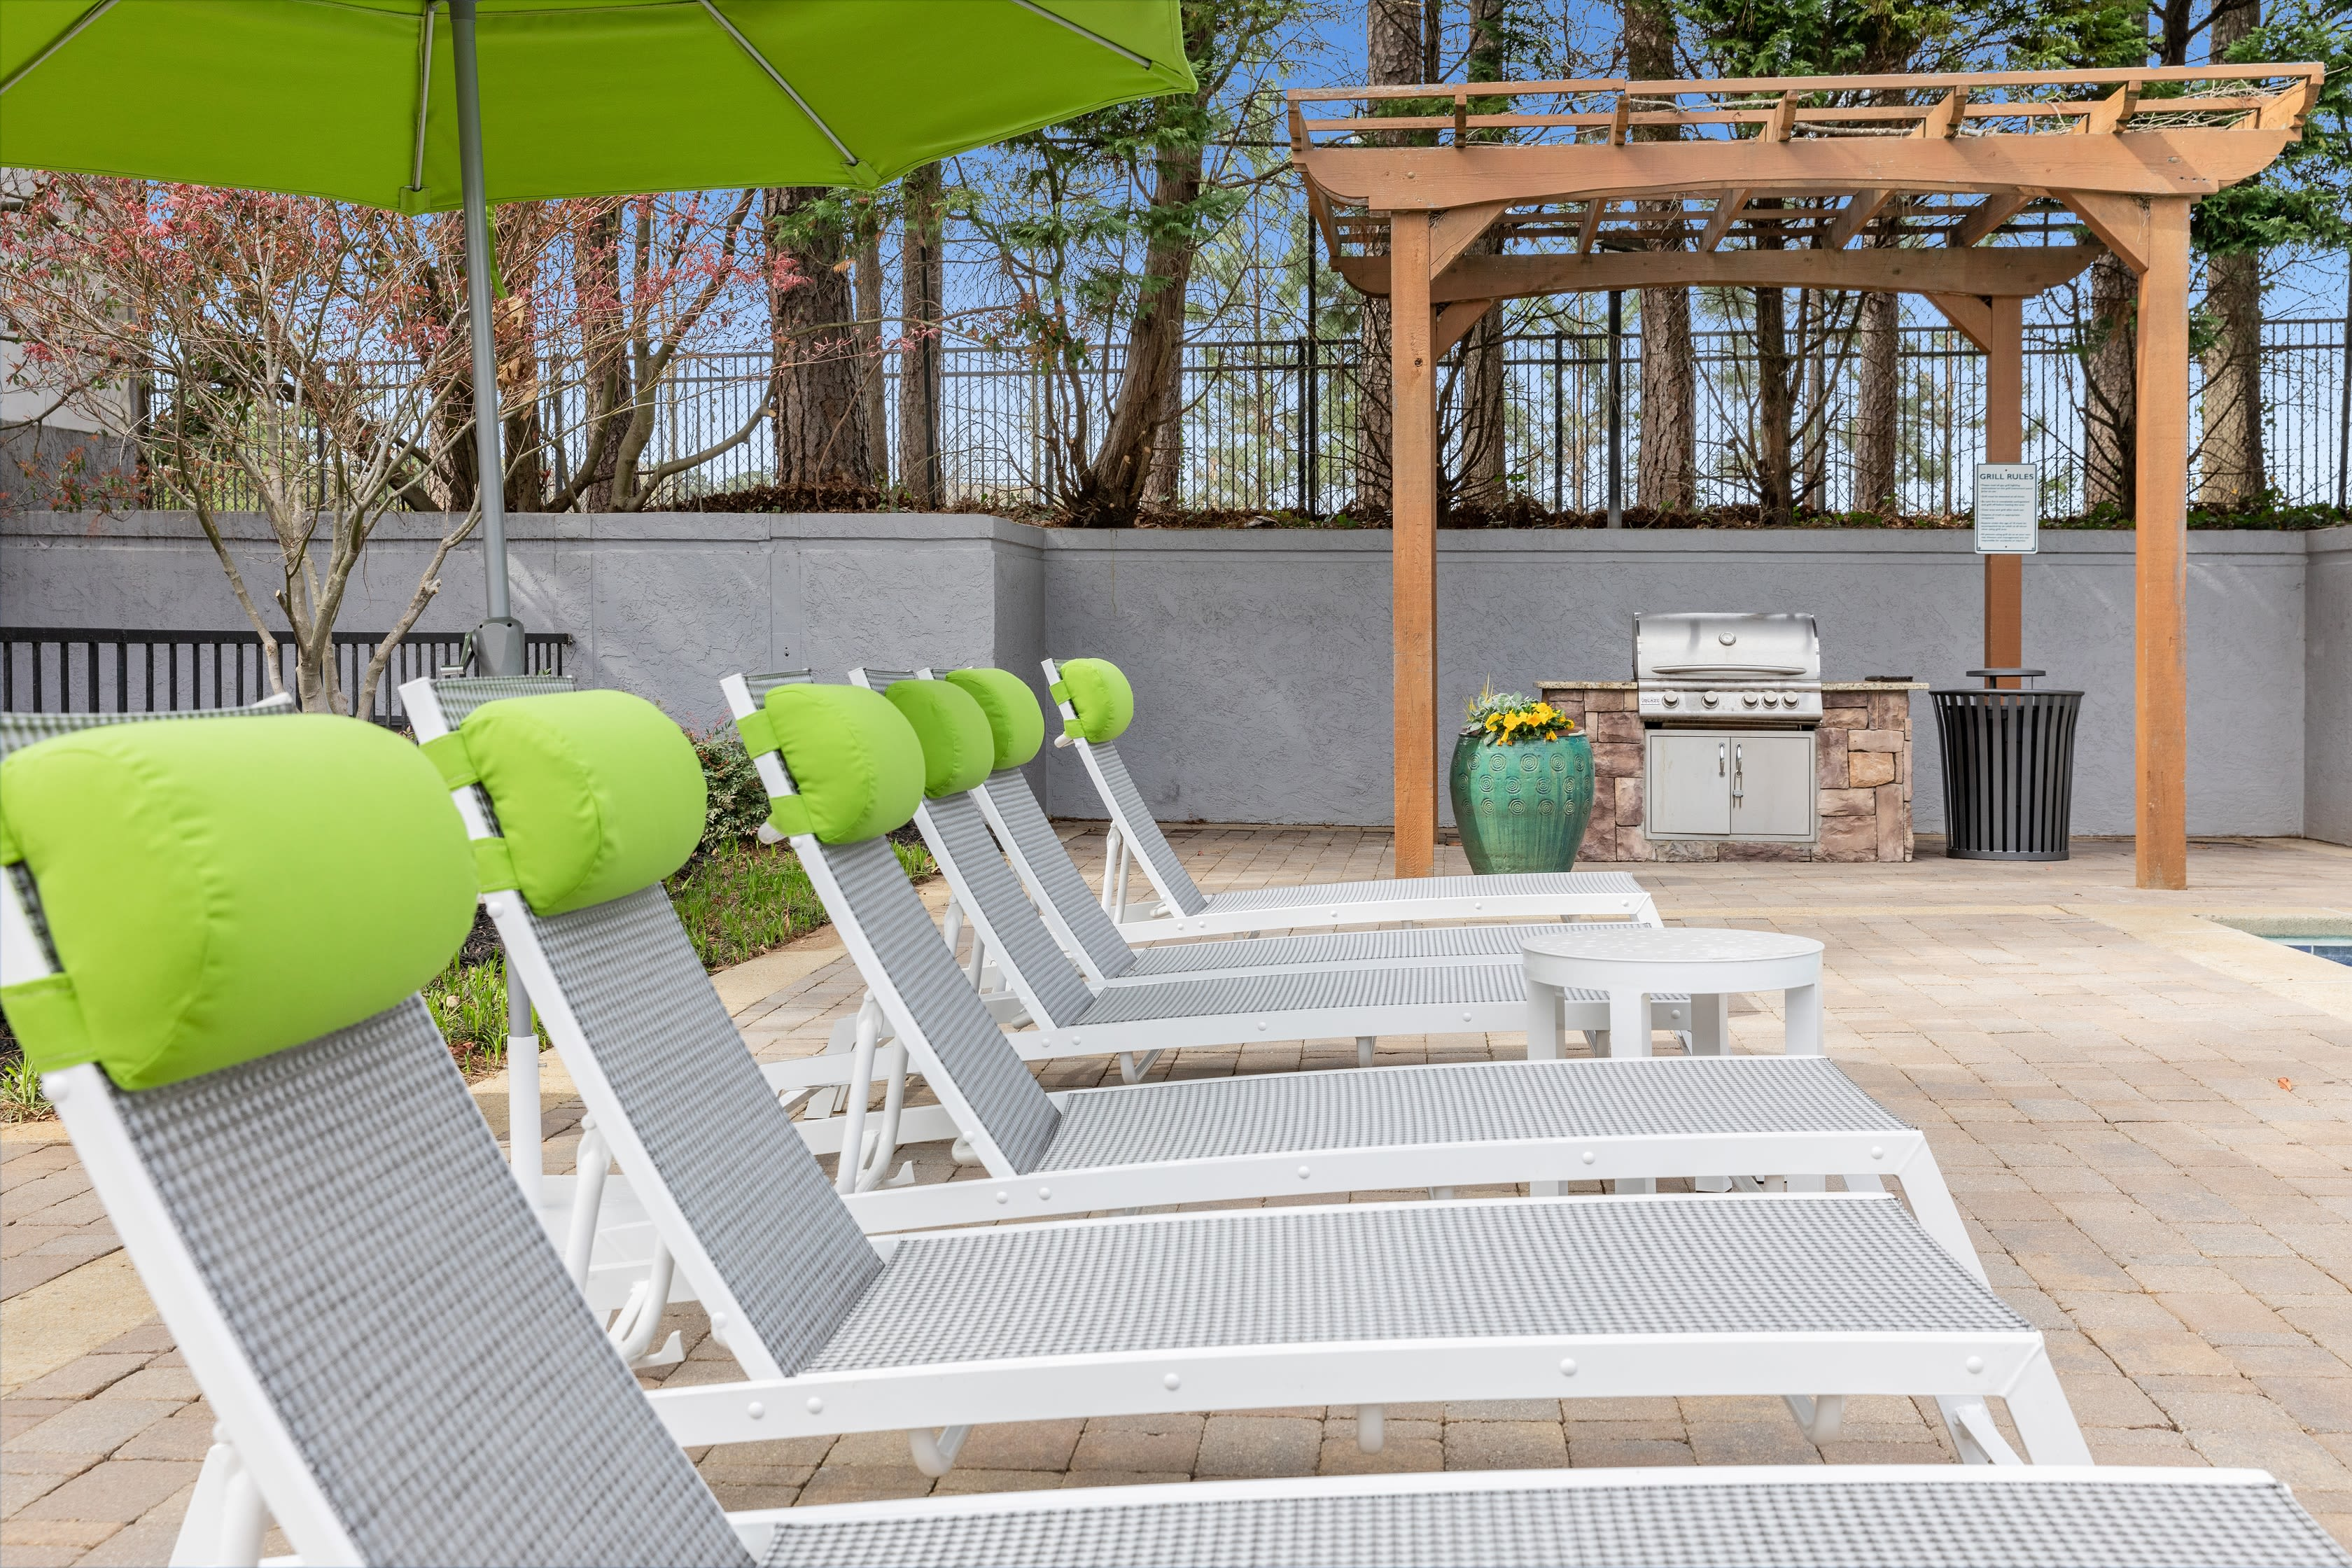 Lounging chairs poolside at The Franklin in Marietta, GA